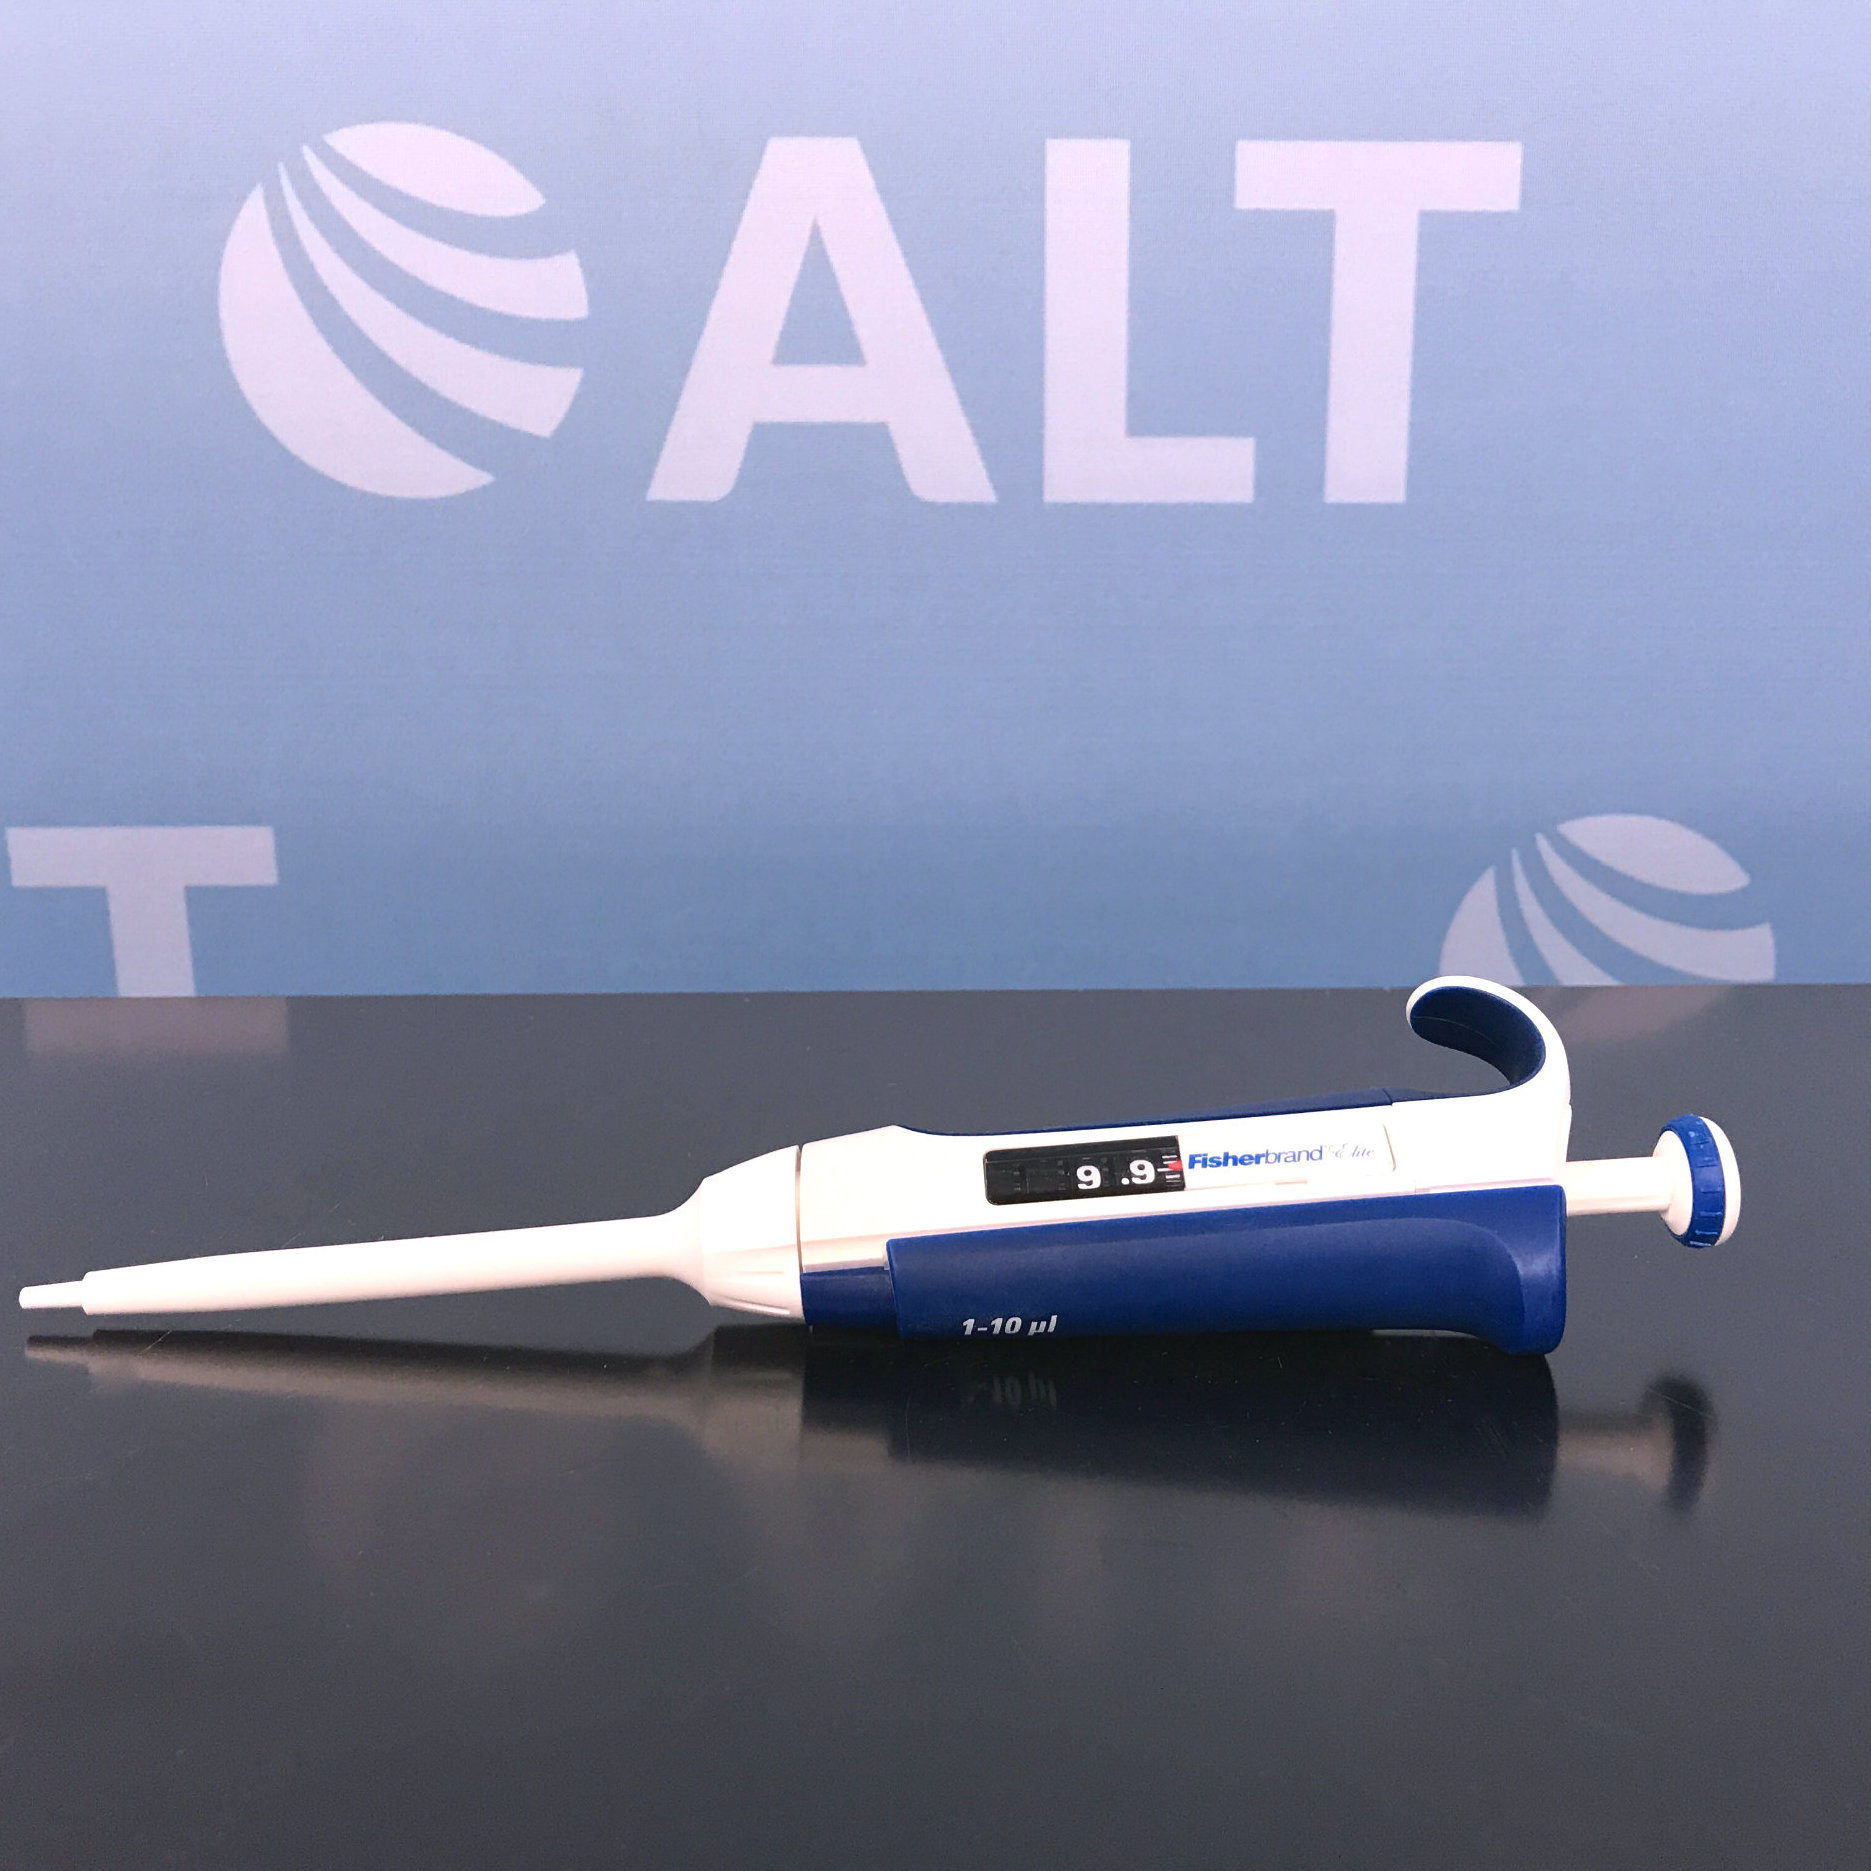 Elite 1-10ul Adjustable-Volume Pipette Name